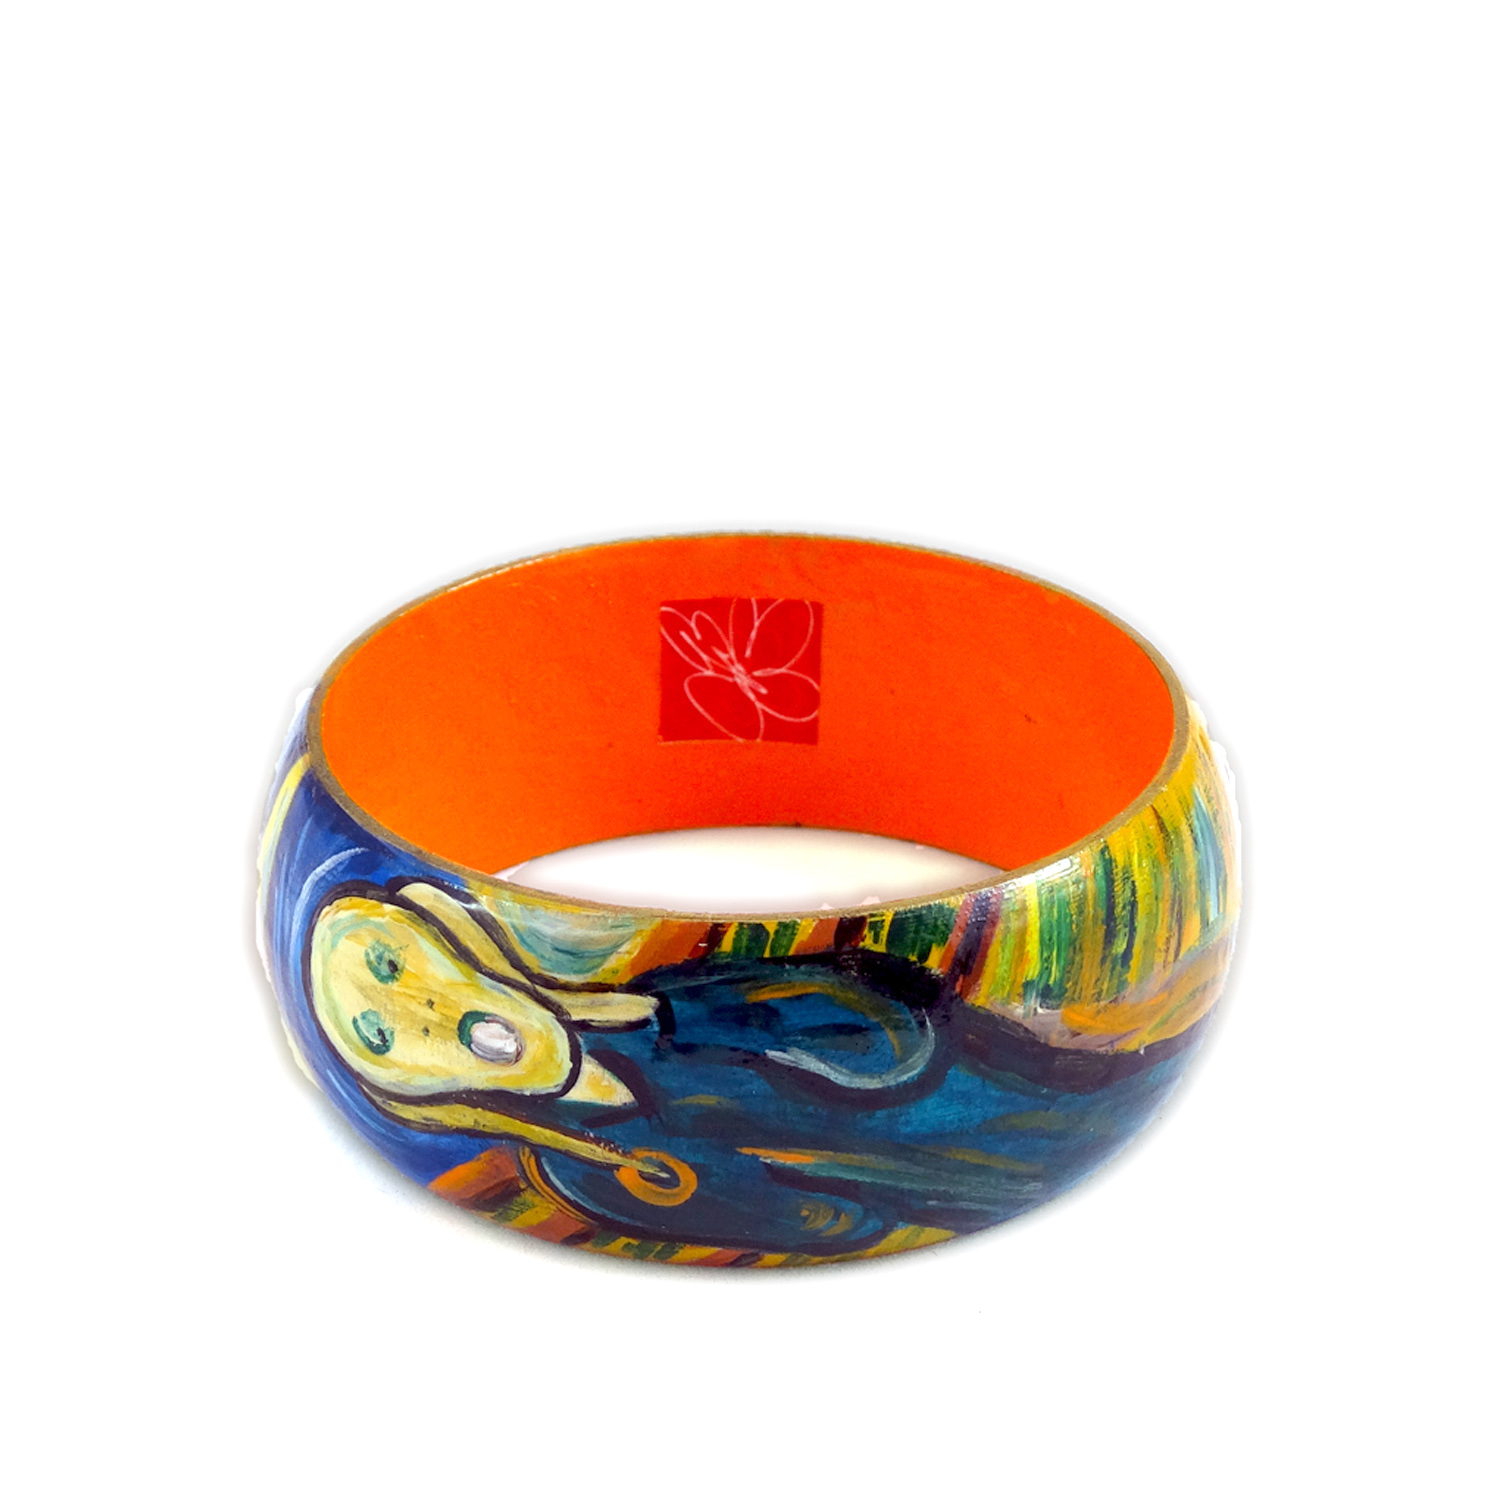 Hand-painted bangle - The Scream by Munch